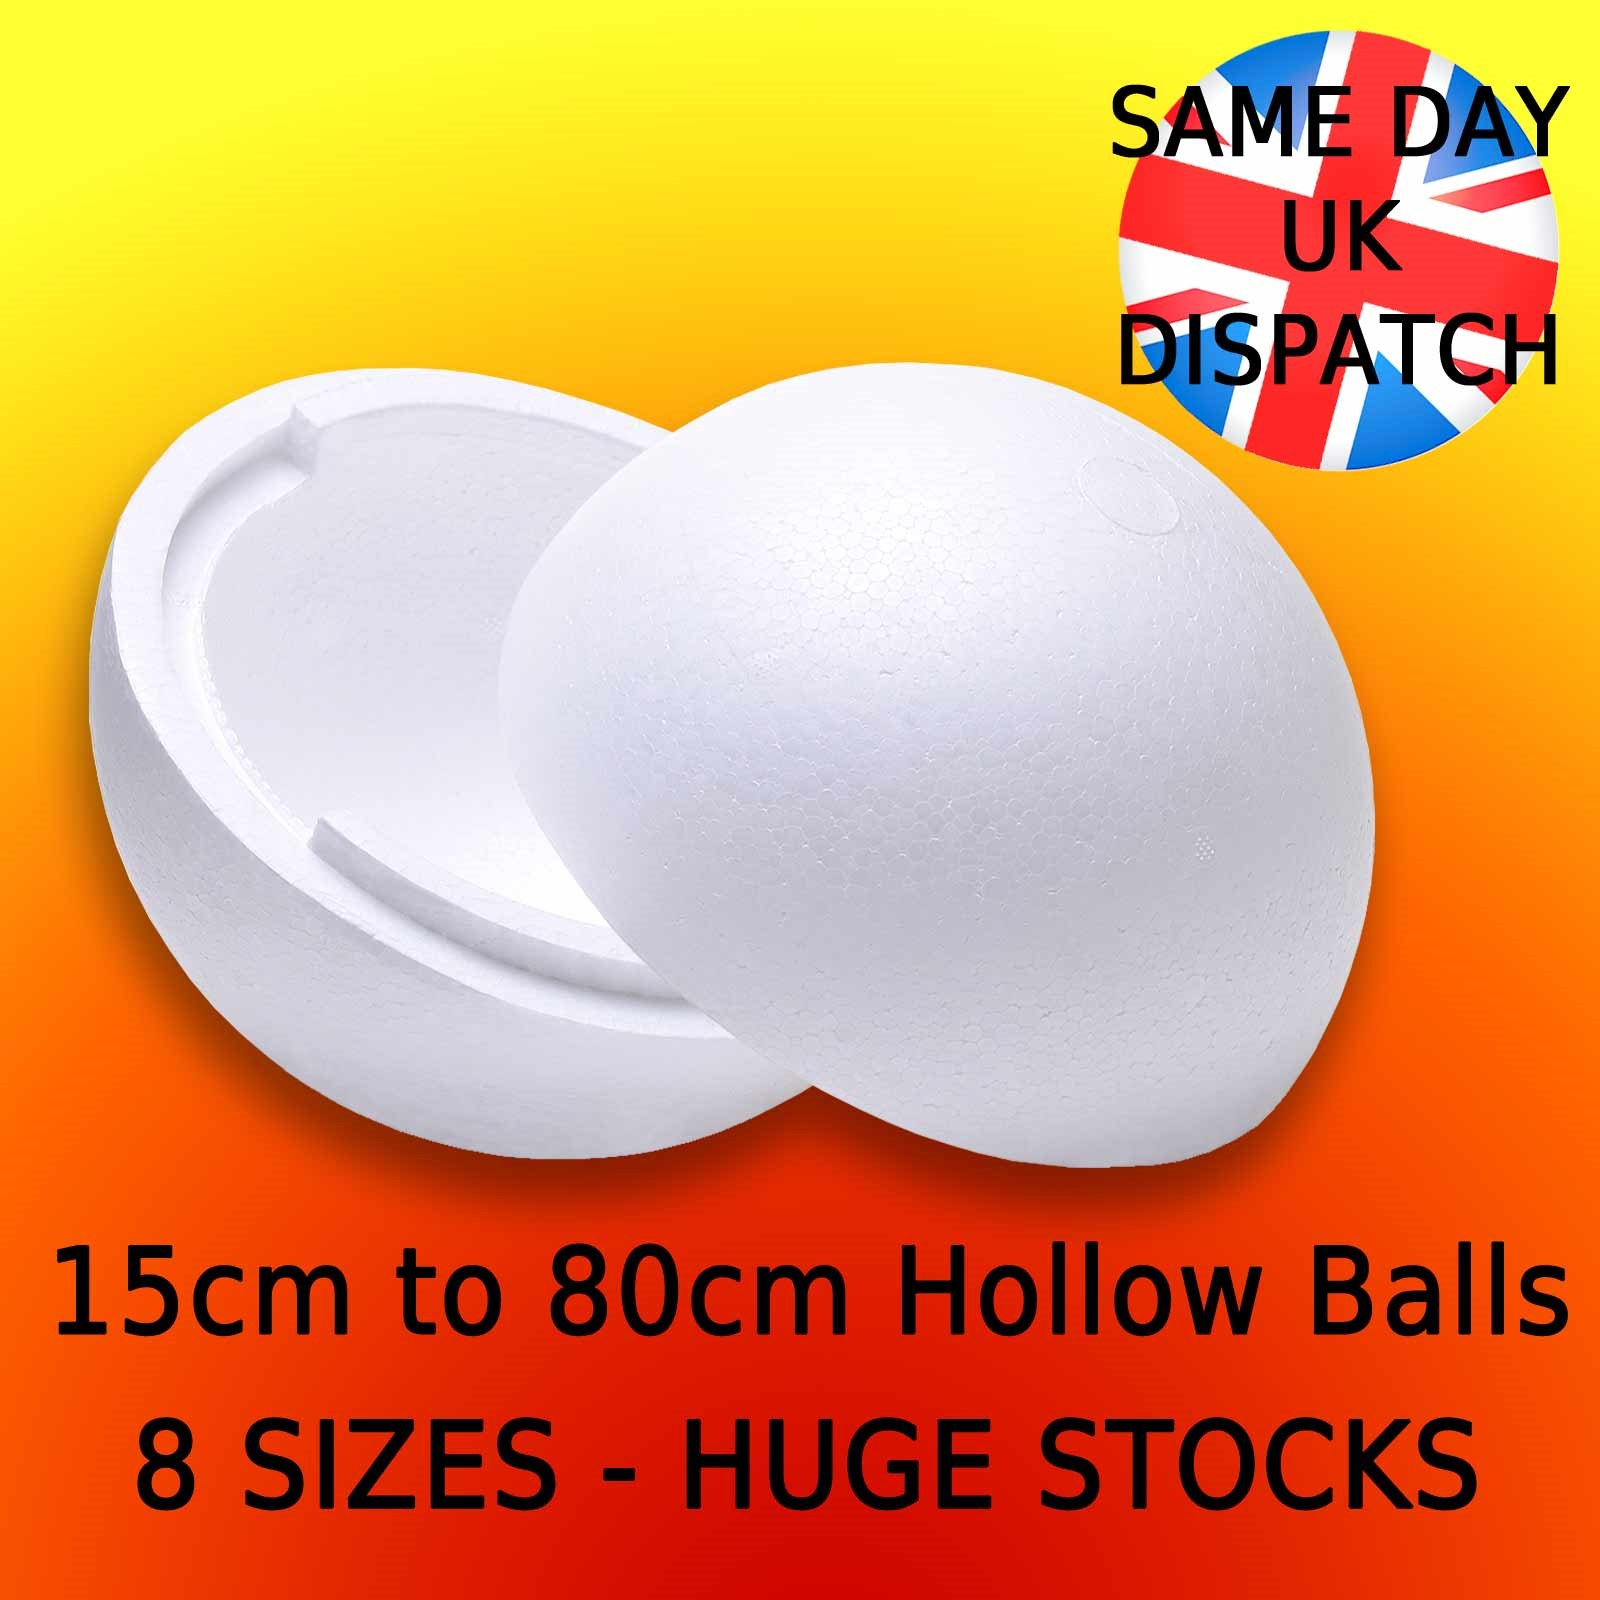 Details about LARGE Polystyrene Balls HOLLOW in 2 halves - 15cm to 80cm  Craft Props Christmas